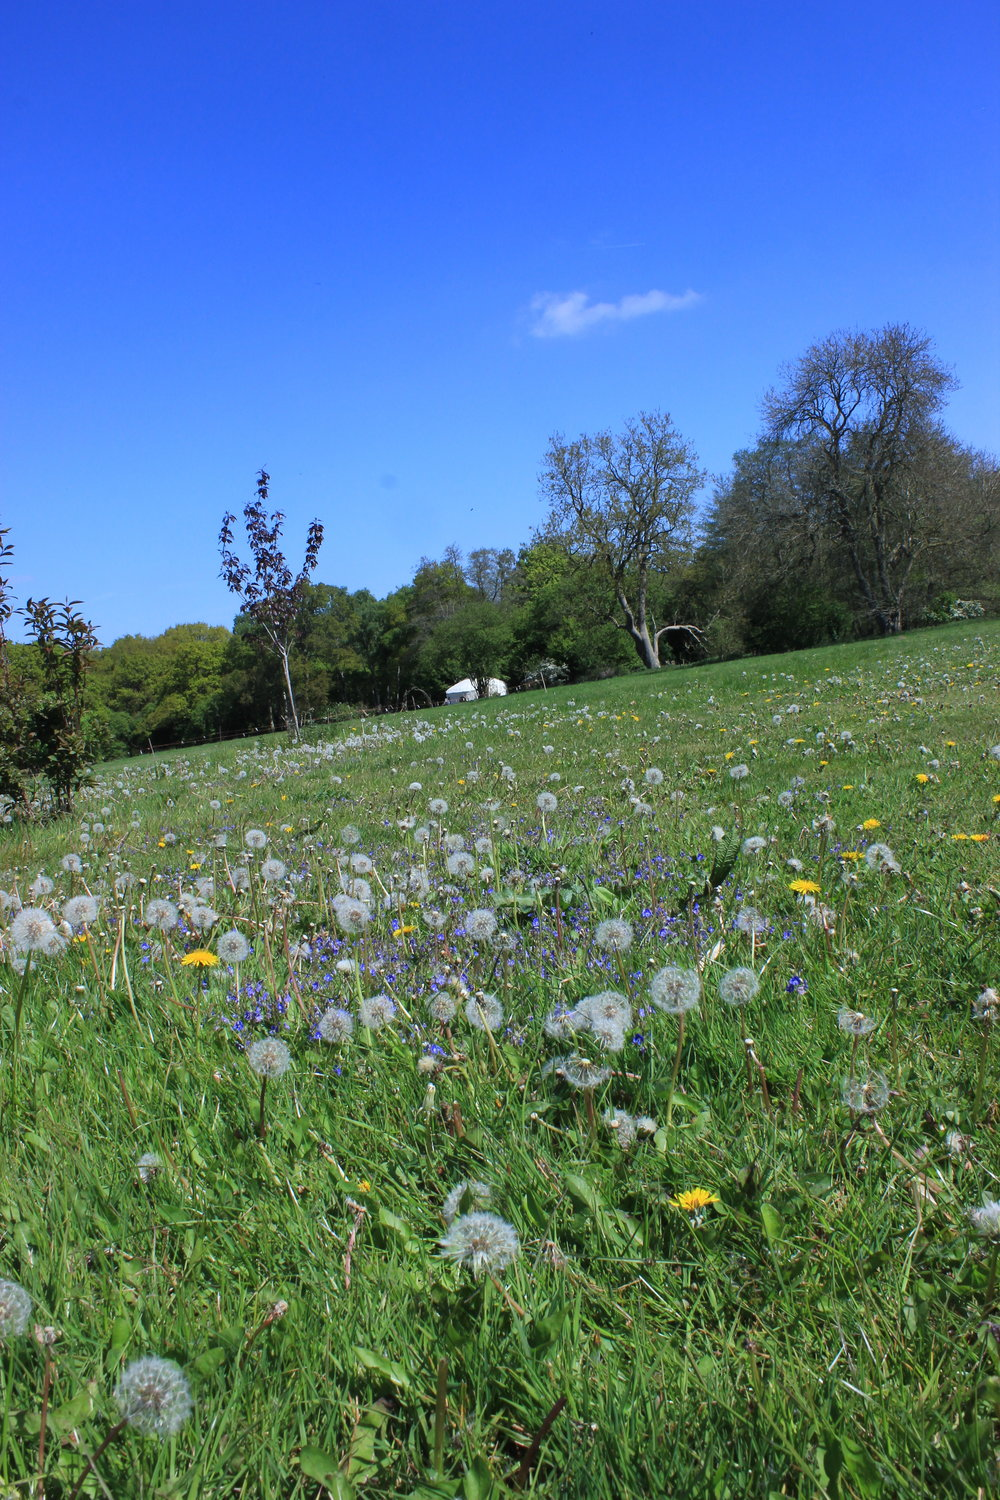 Yurt meadow in perfect glamping weather